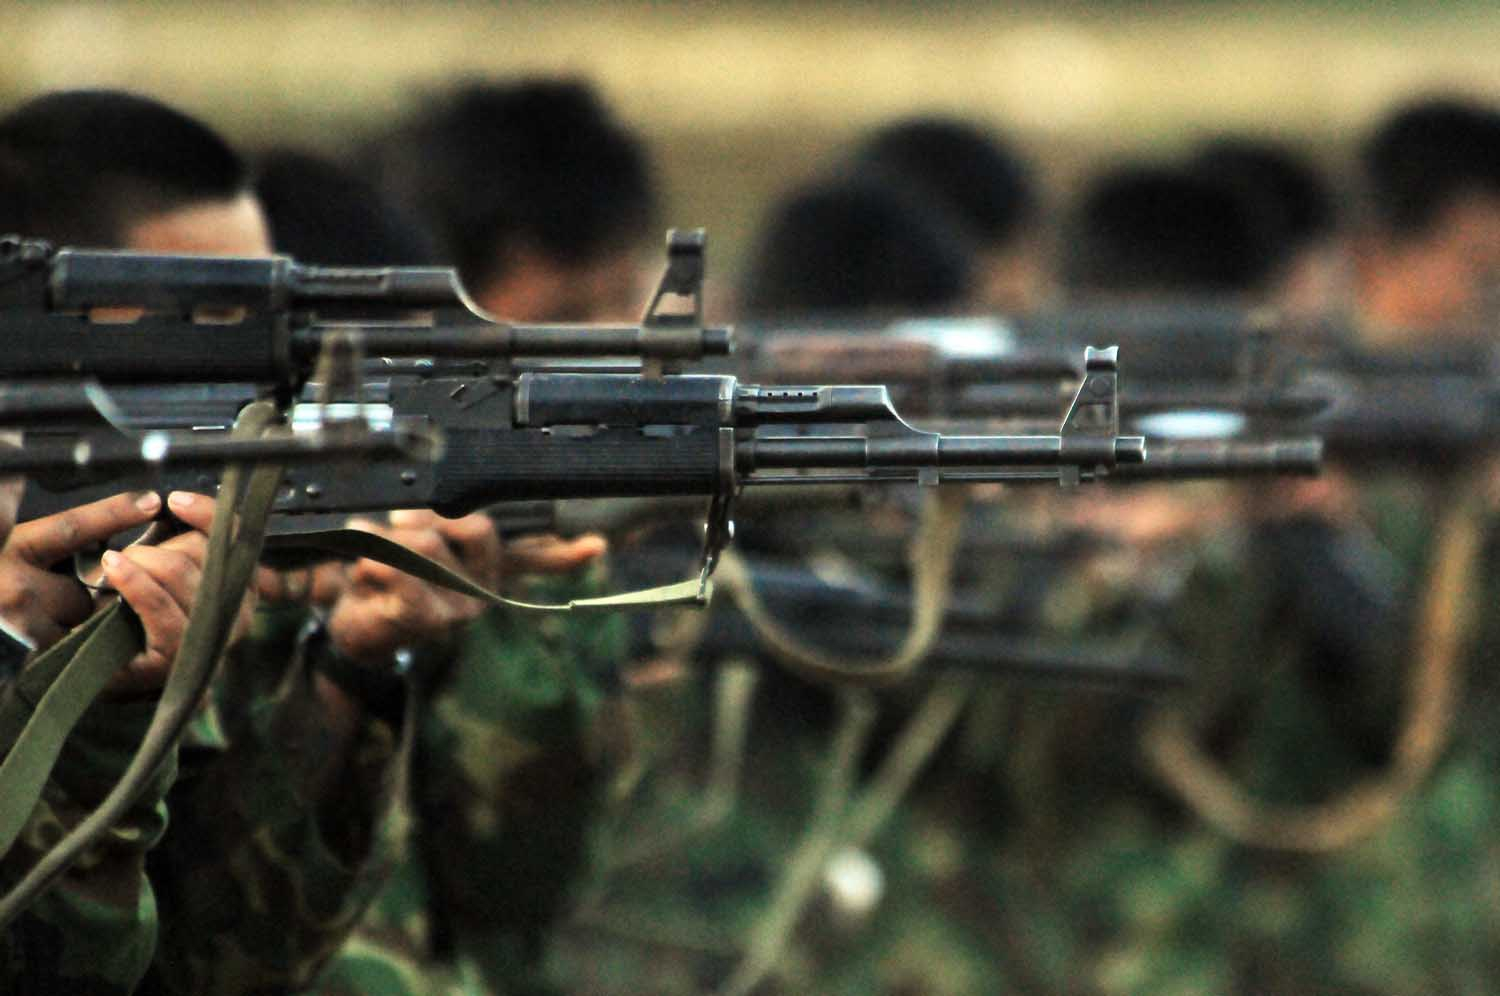 A pro-military disinformation campaign is seeking to sow divisions between ethnic armed groups and People's Defence Forces, and deter young people from seeking military training. (Frontier)